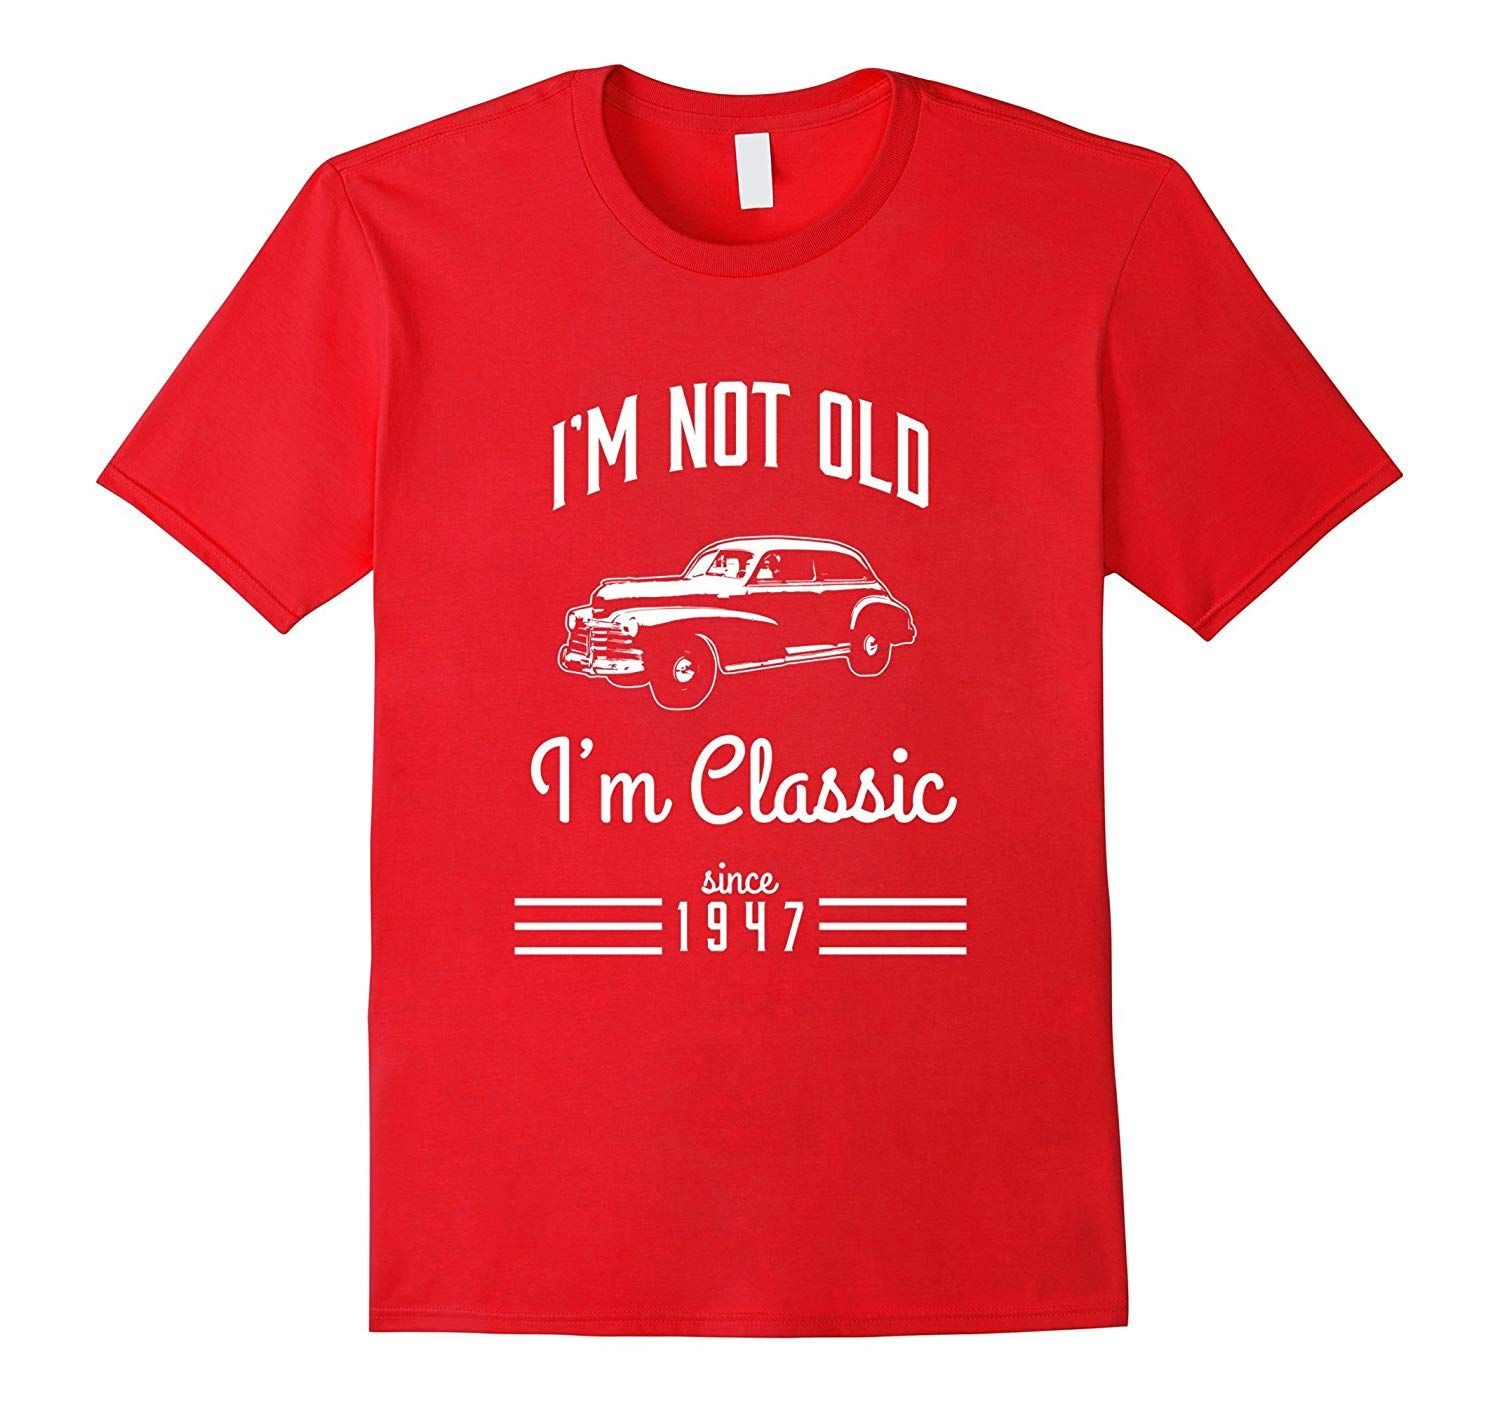 Not Old, Classic Car Funny T-Shirt 70th Birthday Gift 1947